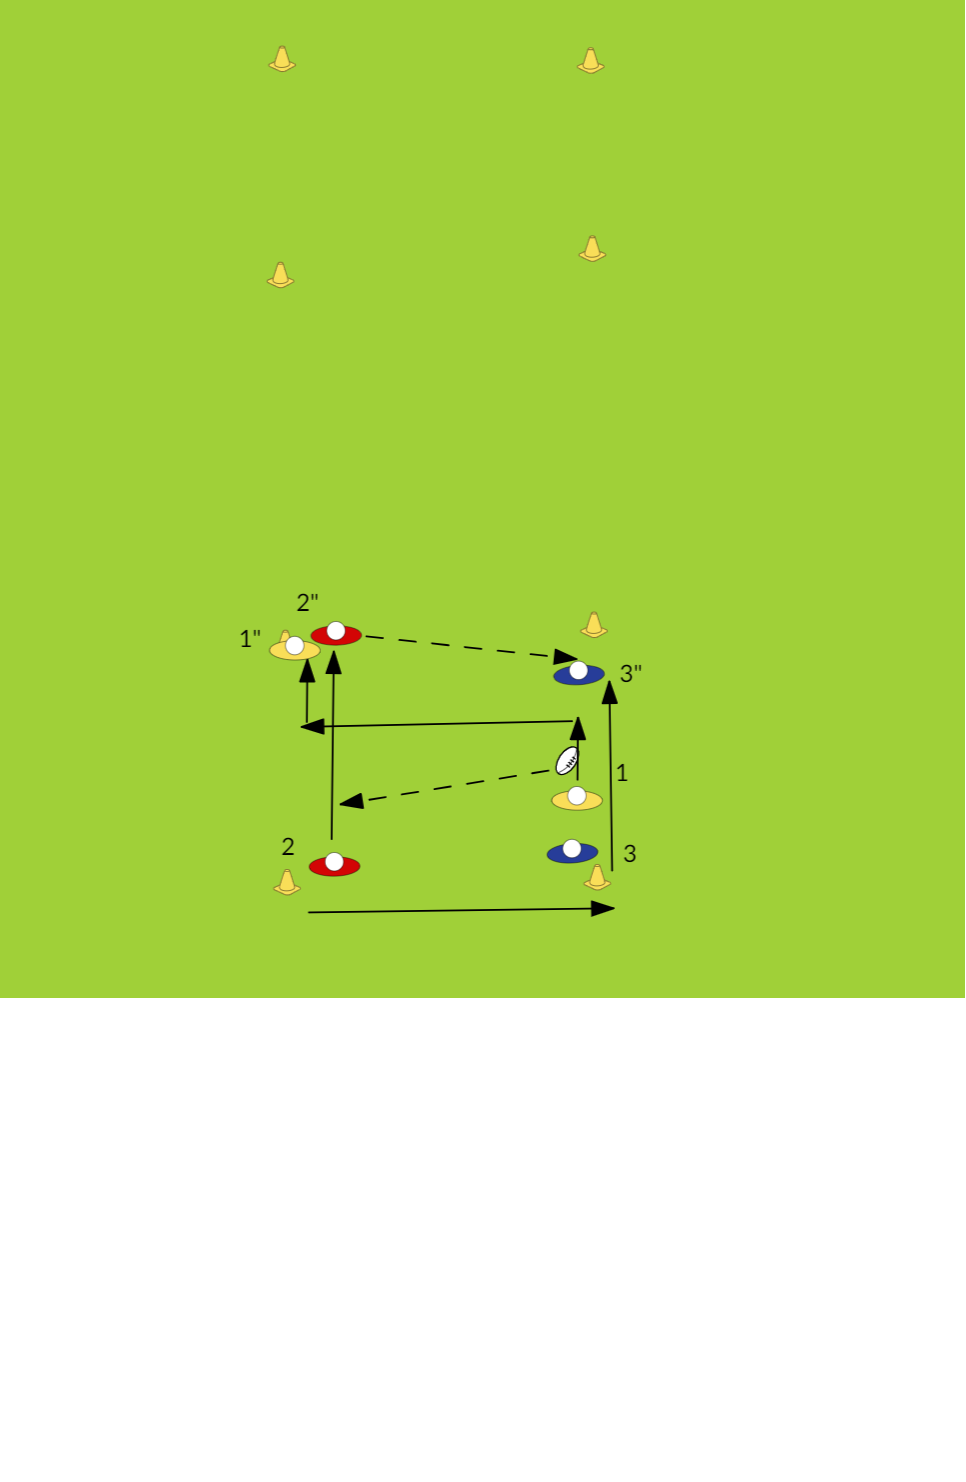 Quick hands 2 & Running lines www.Rugbywise.nlHandlingRugby Drills Coaching